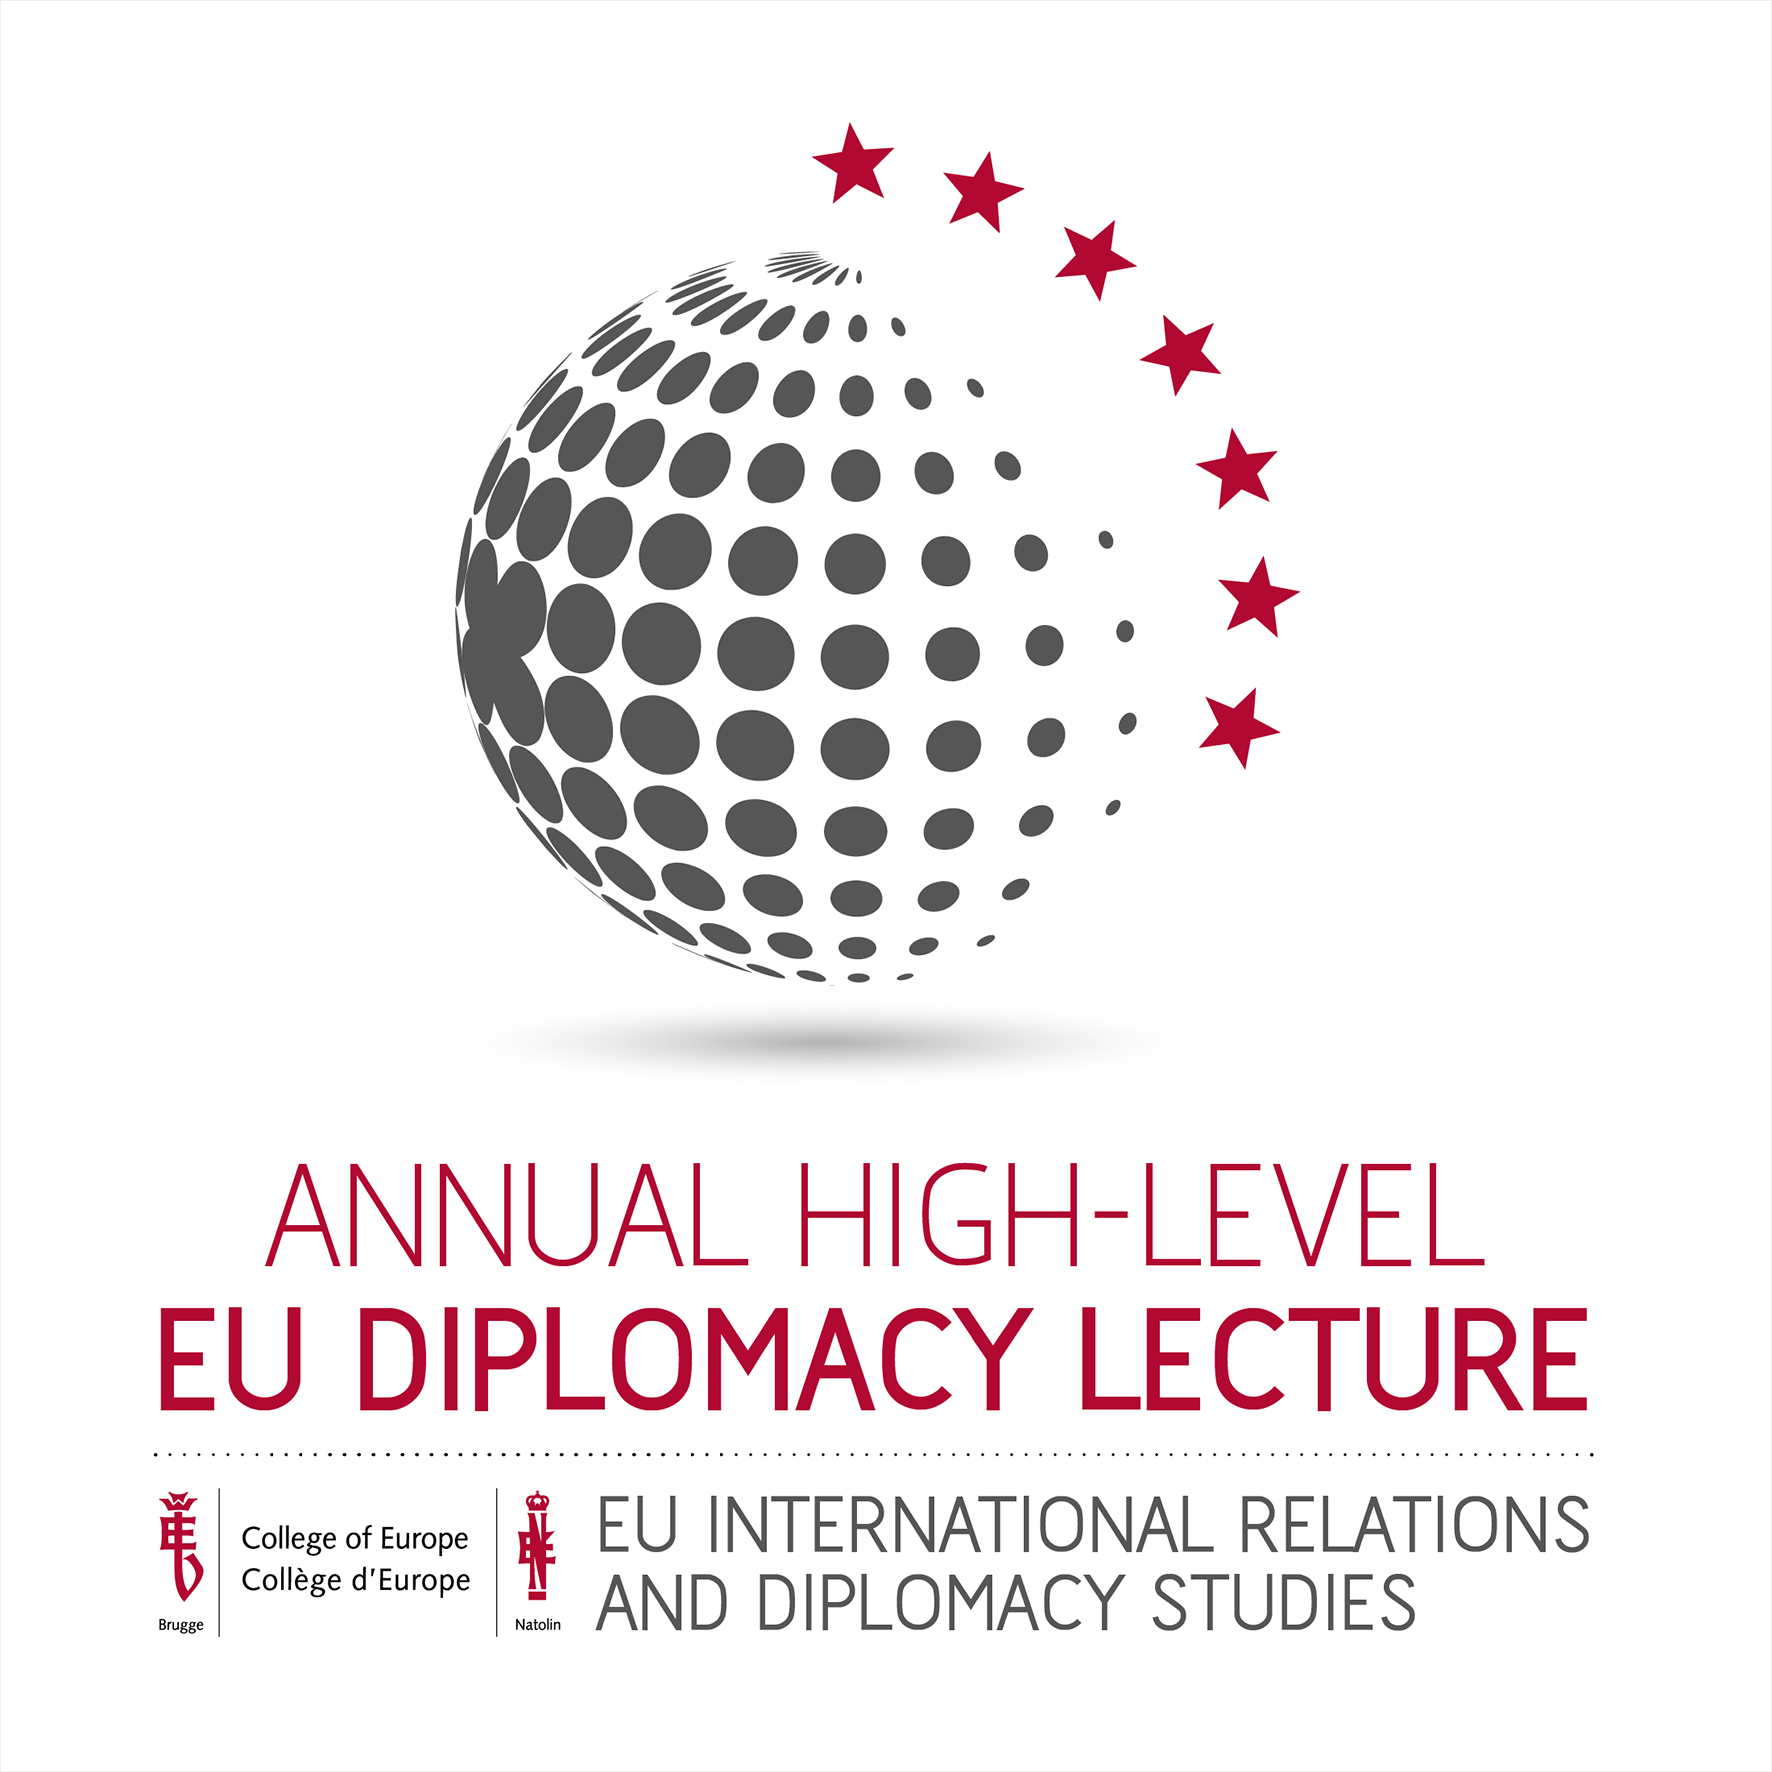 eu diplomacy lecture the eu s common foreign and security policy the department of eu international relations and diplomacy studies at the college of europe in bruges is organising the third eu diplomacy lecture in